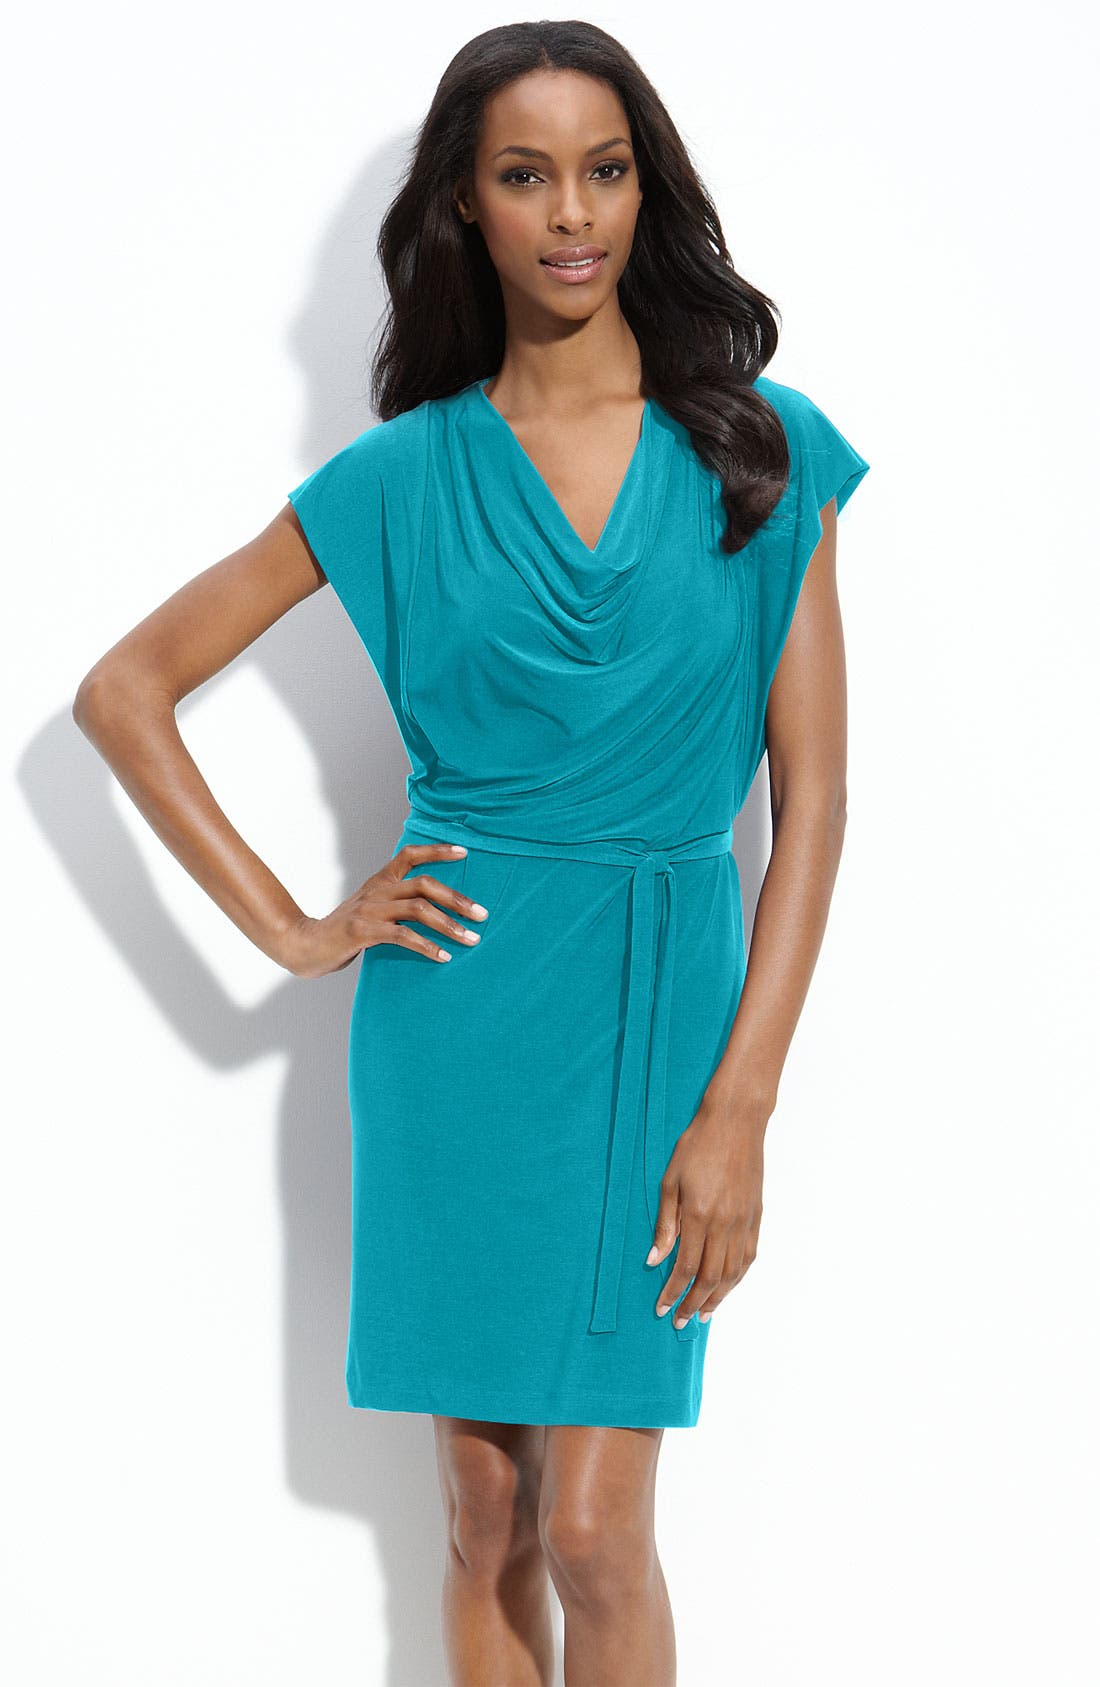 Alternate Image 1 Selected - Alex & Ava Jersey Sheath Dress